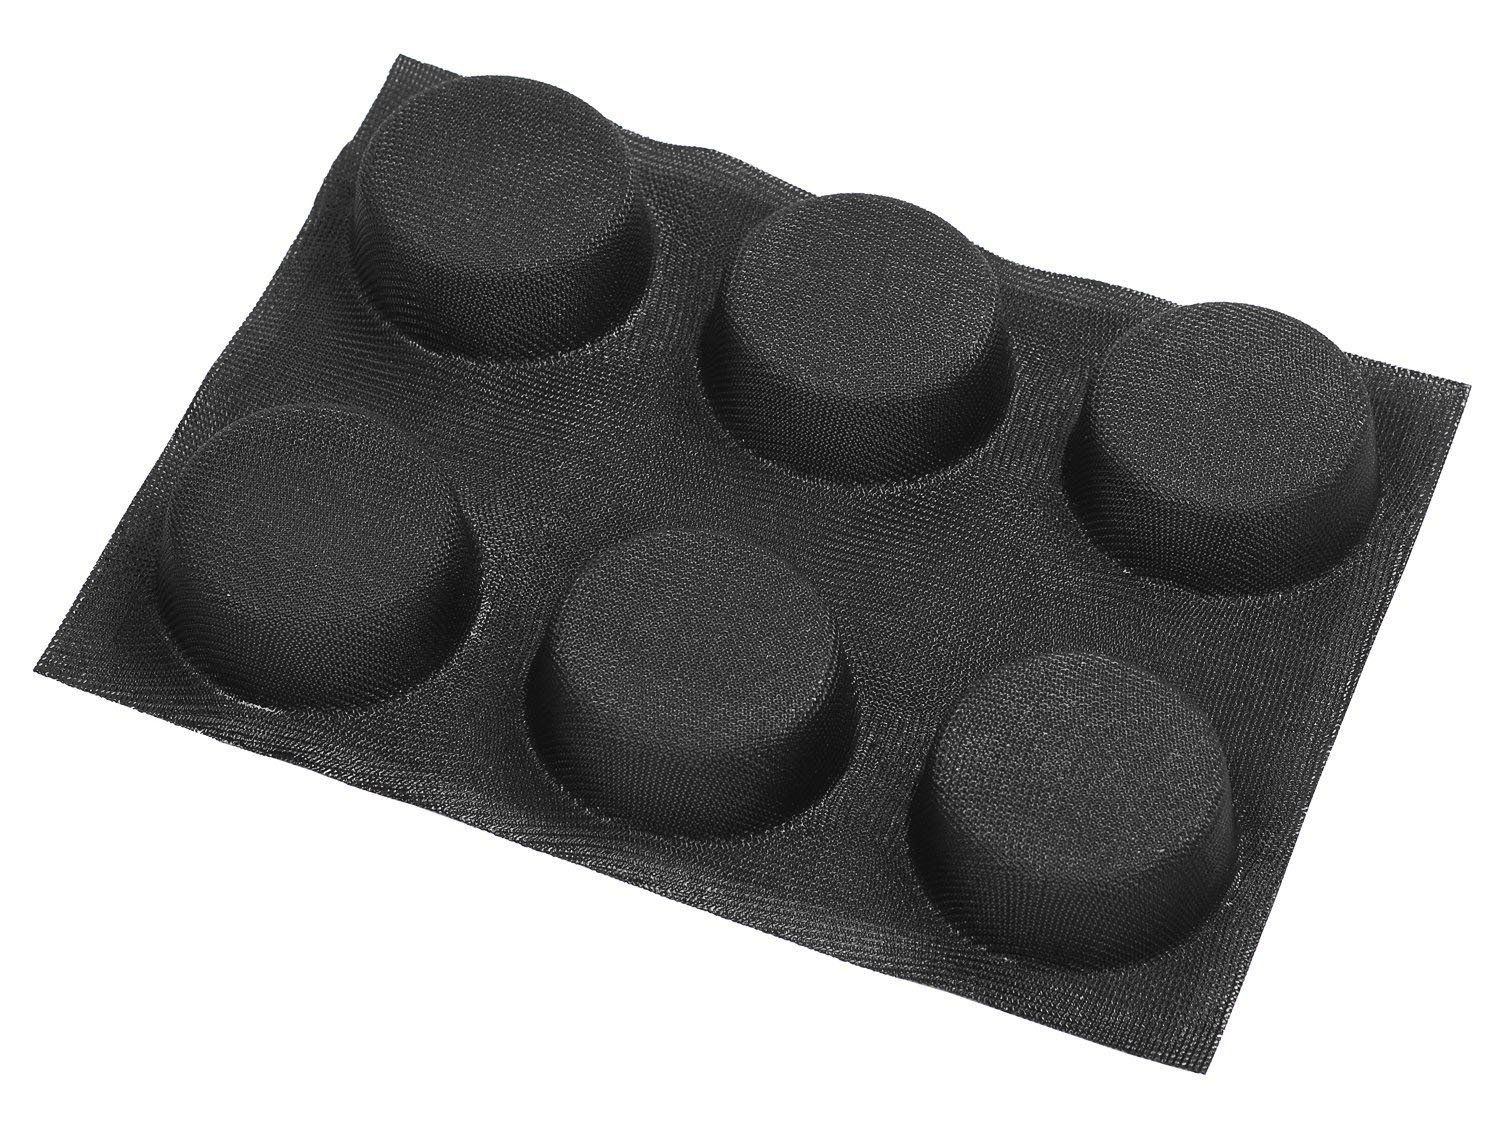 Dltsli Silicone Non Stick Perforated Baking Liners Mat Bread Buns Mold Subway Bread Mould by Dltsli